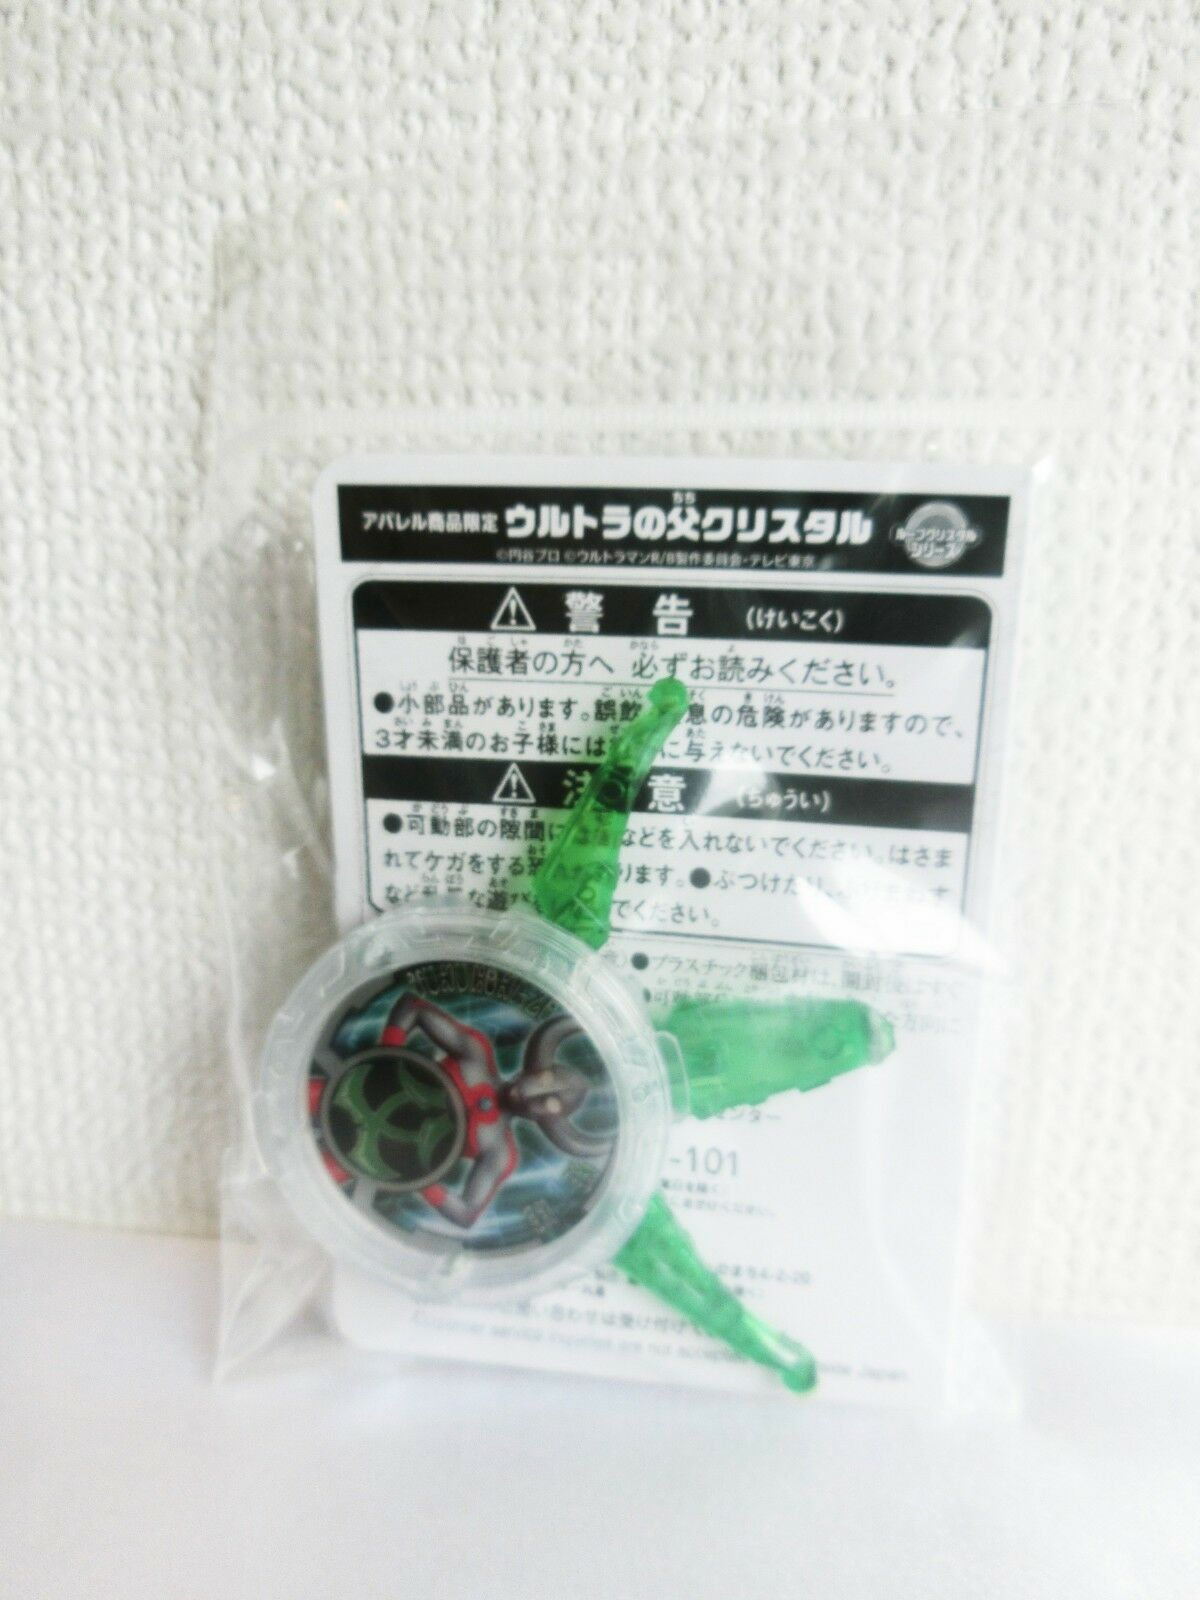 ULTRAMAN DX Lube Gyro Crystal Apparel Limited Edition Father Crystal F/S Japan